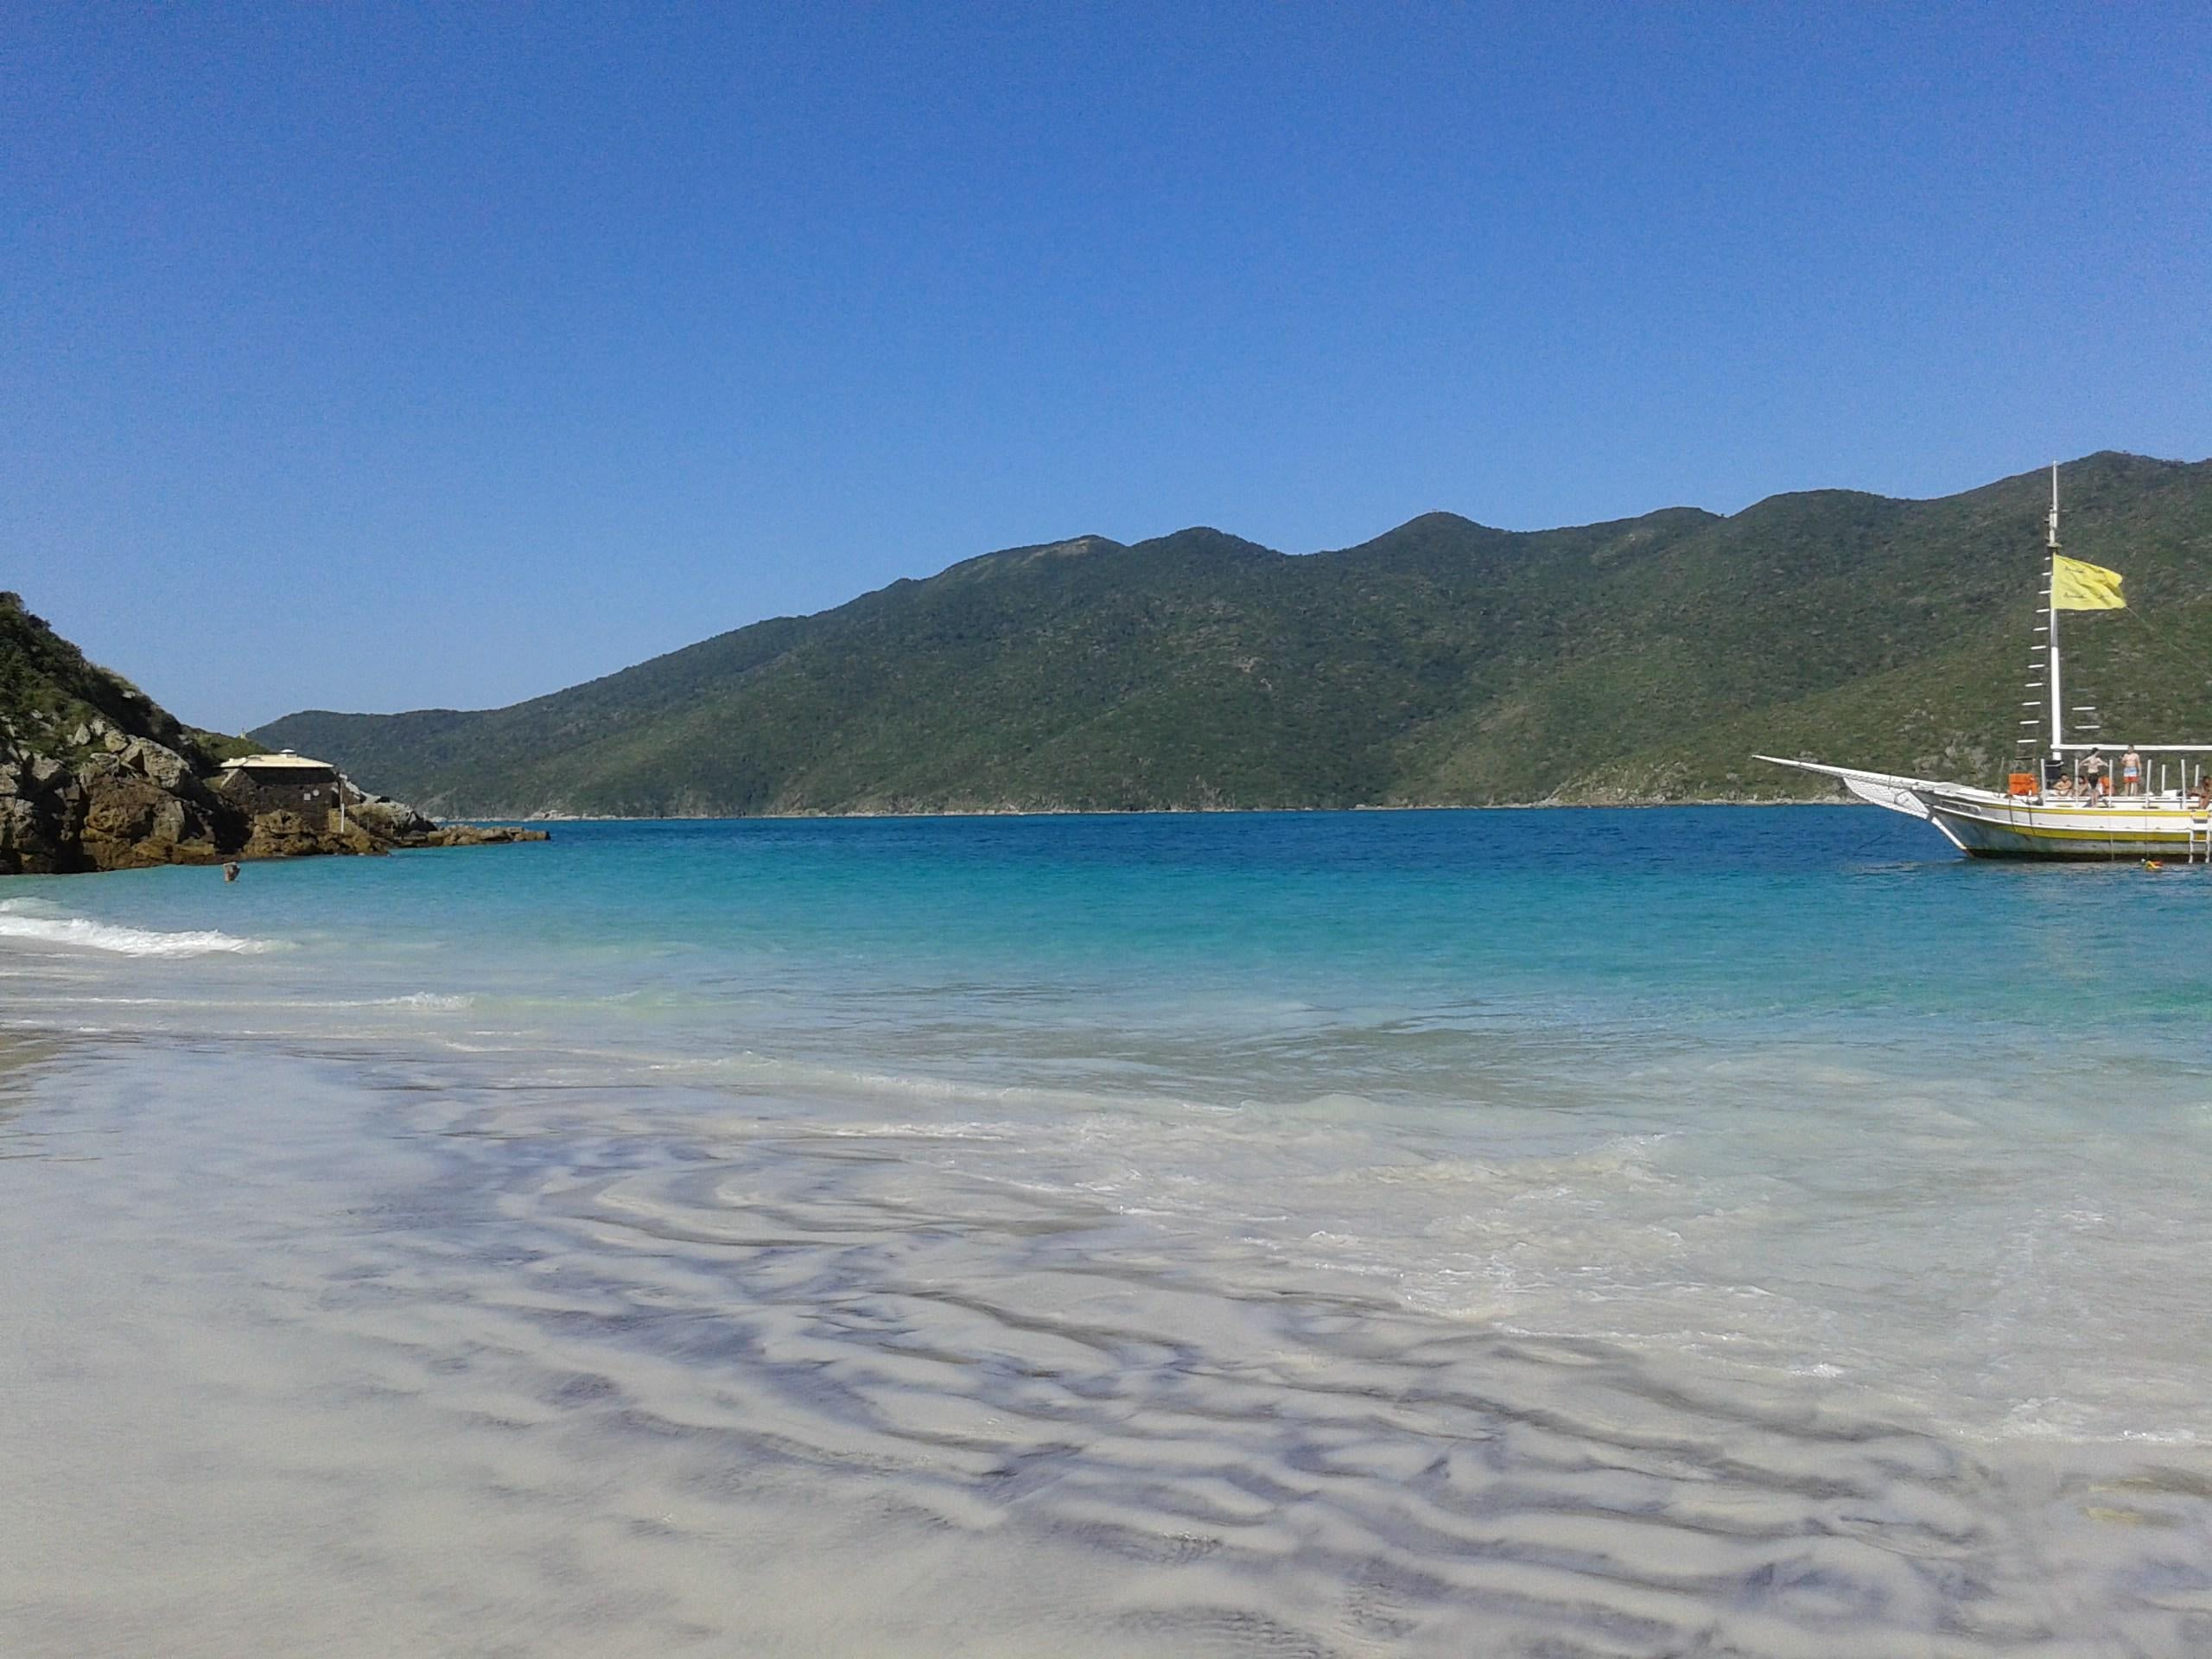 Body Of Water in Cabo Frio